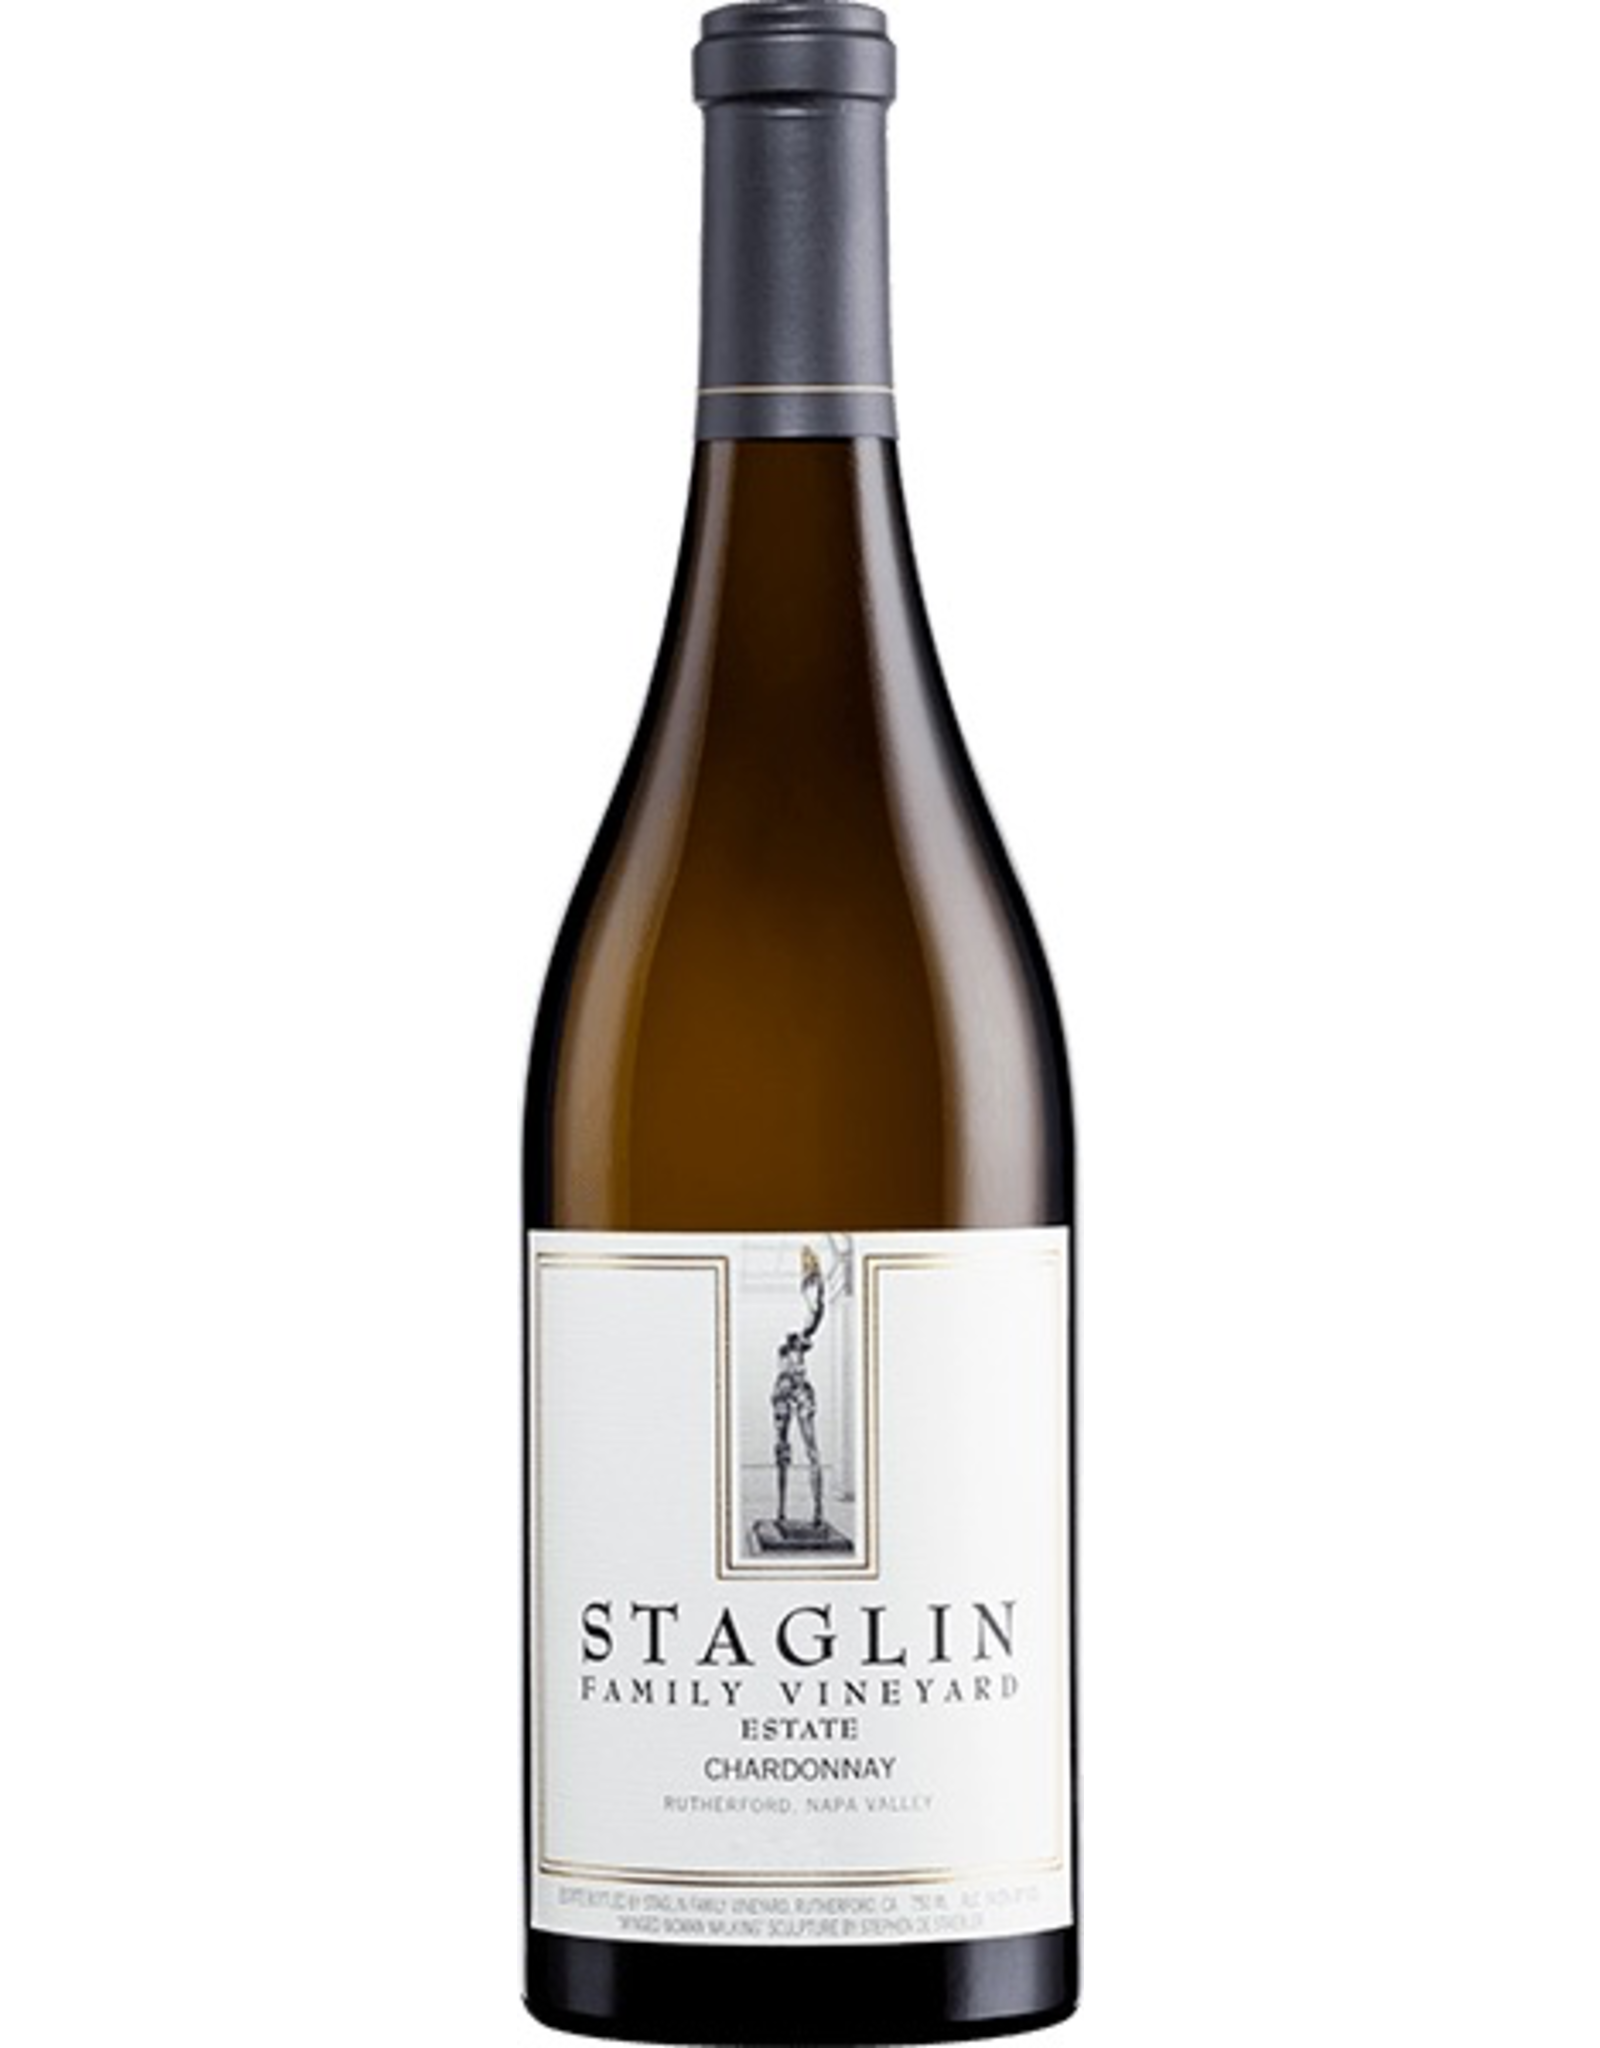 Staglin Family Vineyard – Estate Chardonnay 2017 – Rutherford, Napa Valley